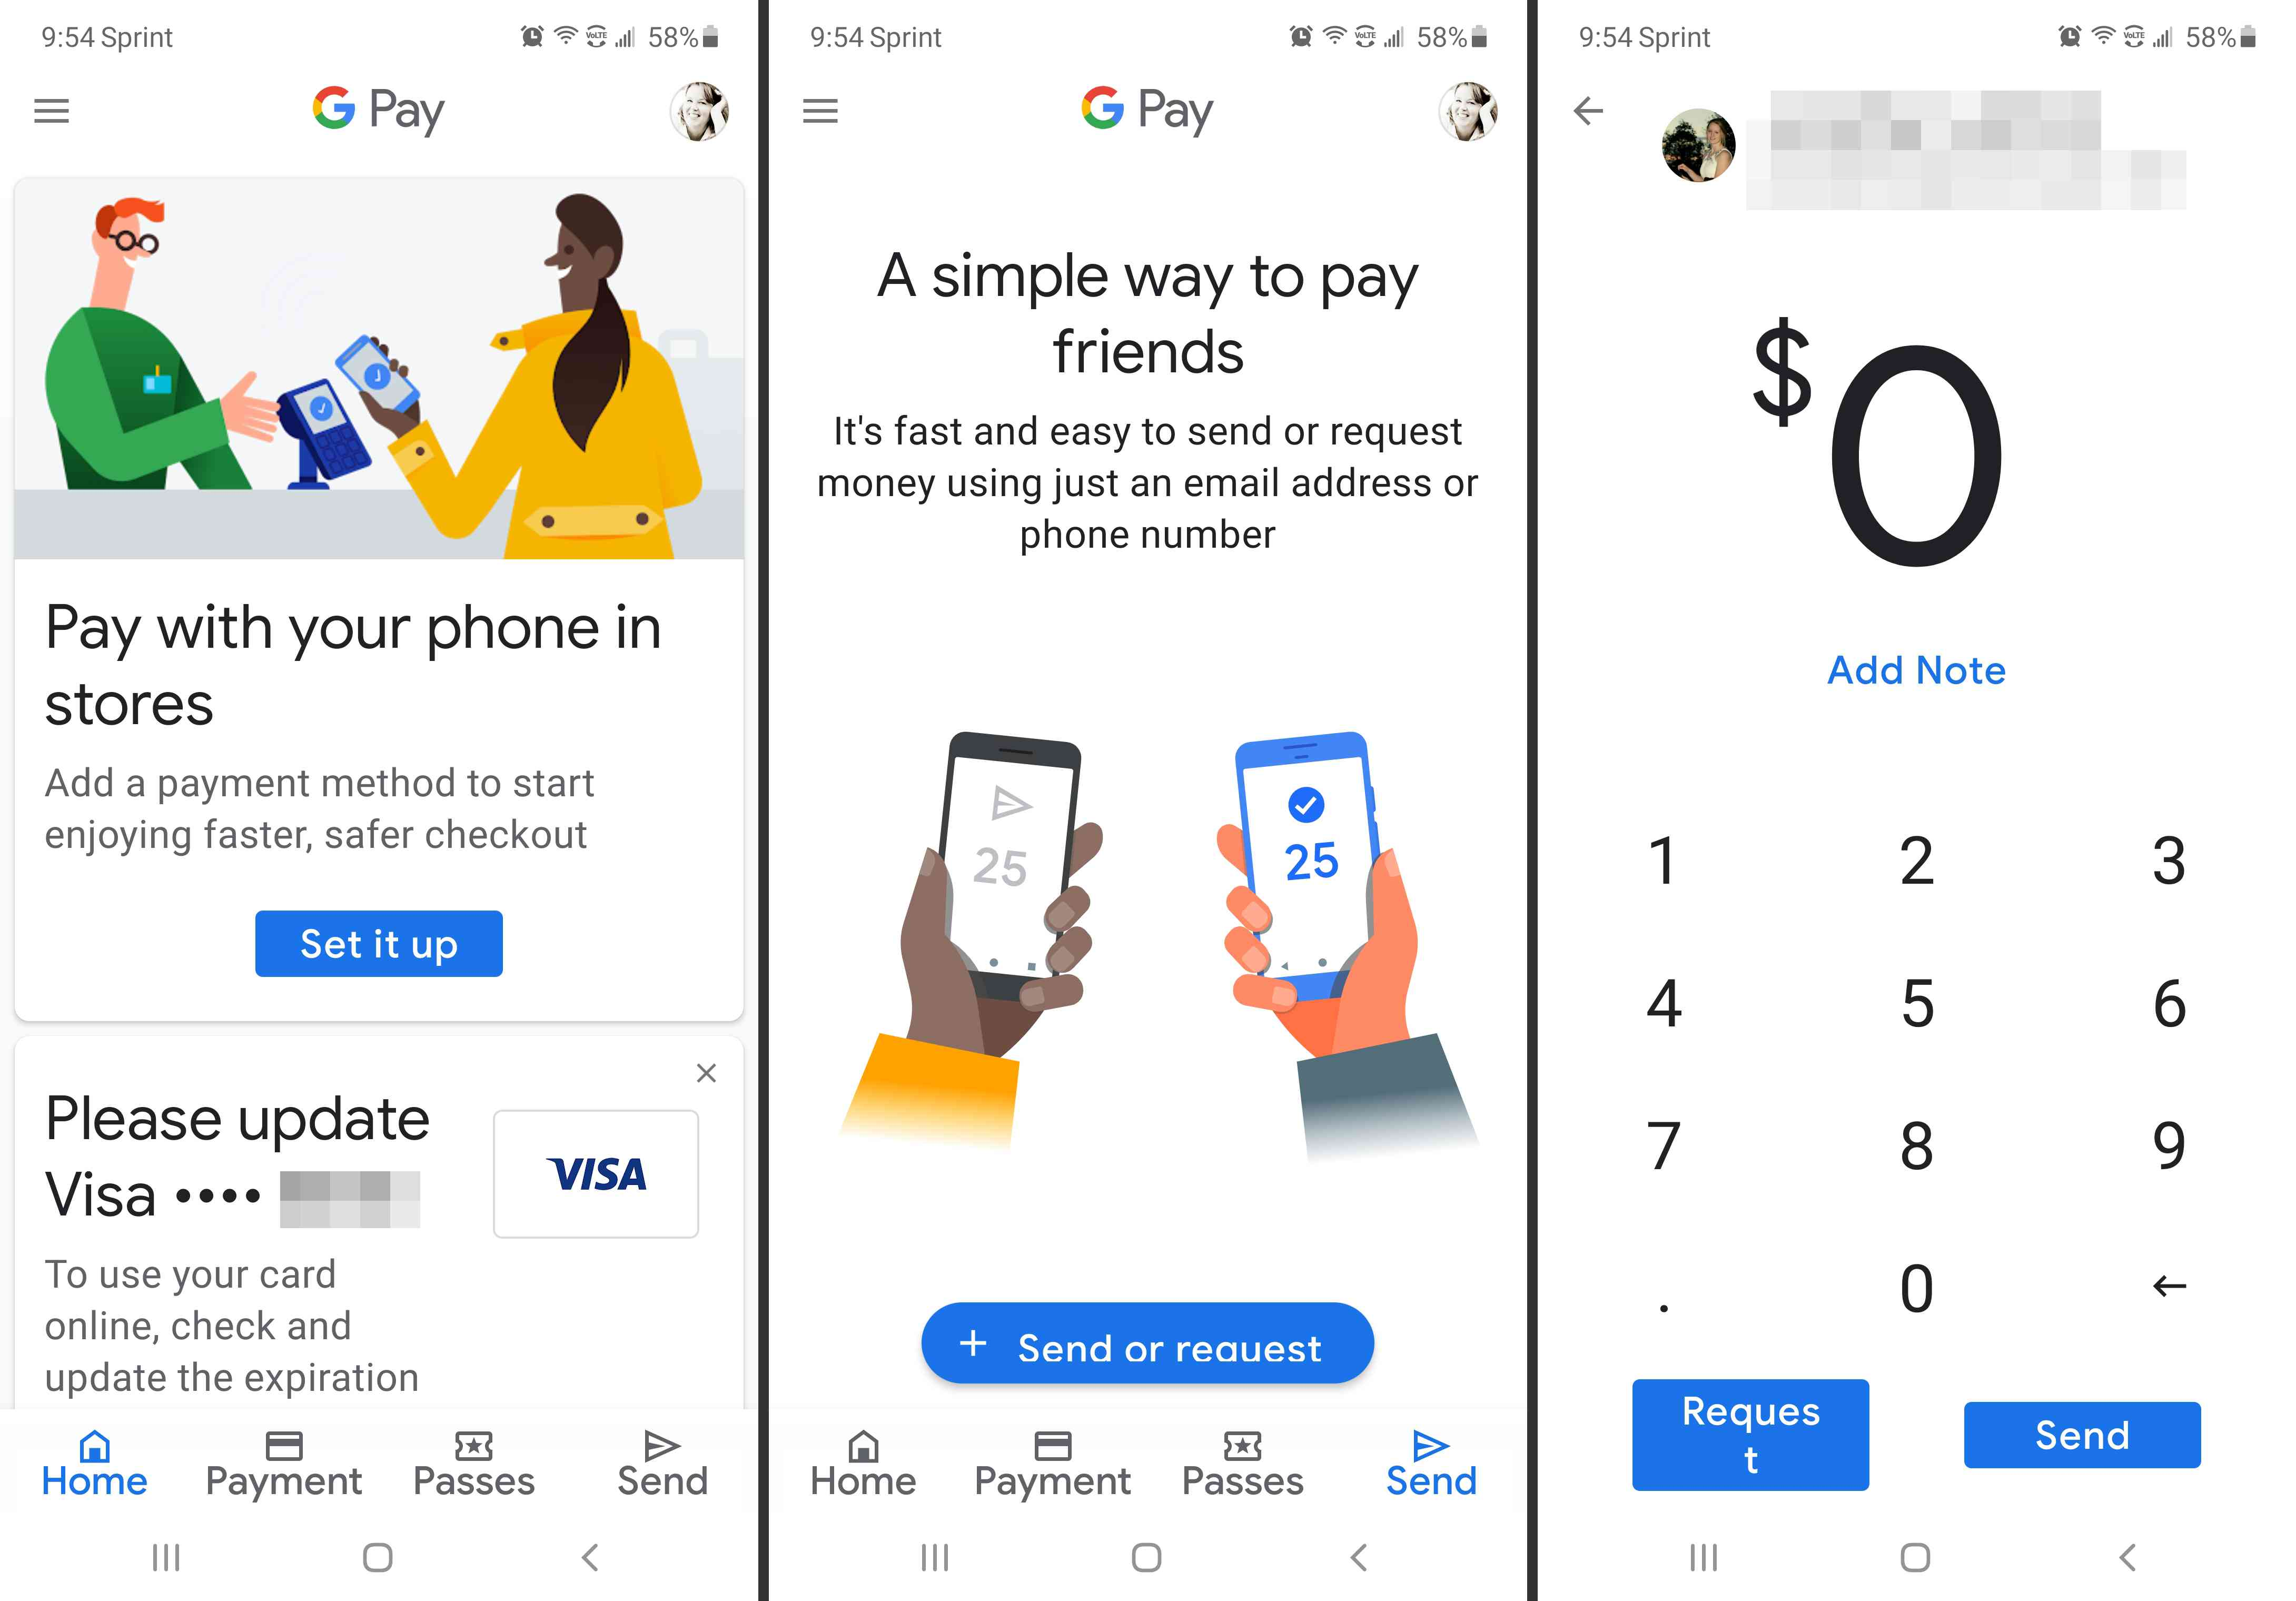 Google Pay app payment and transfer screens